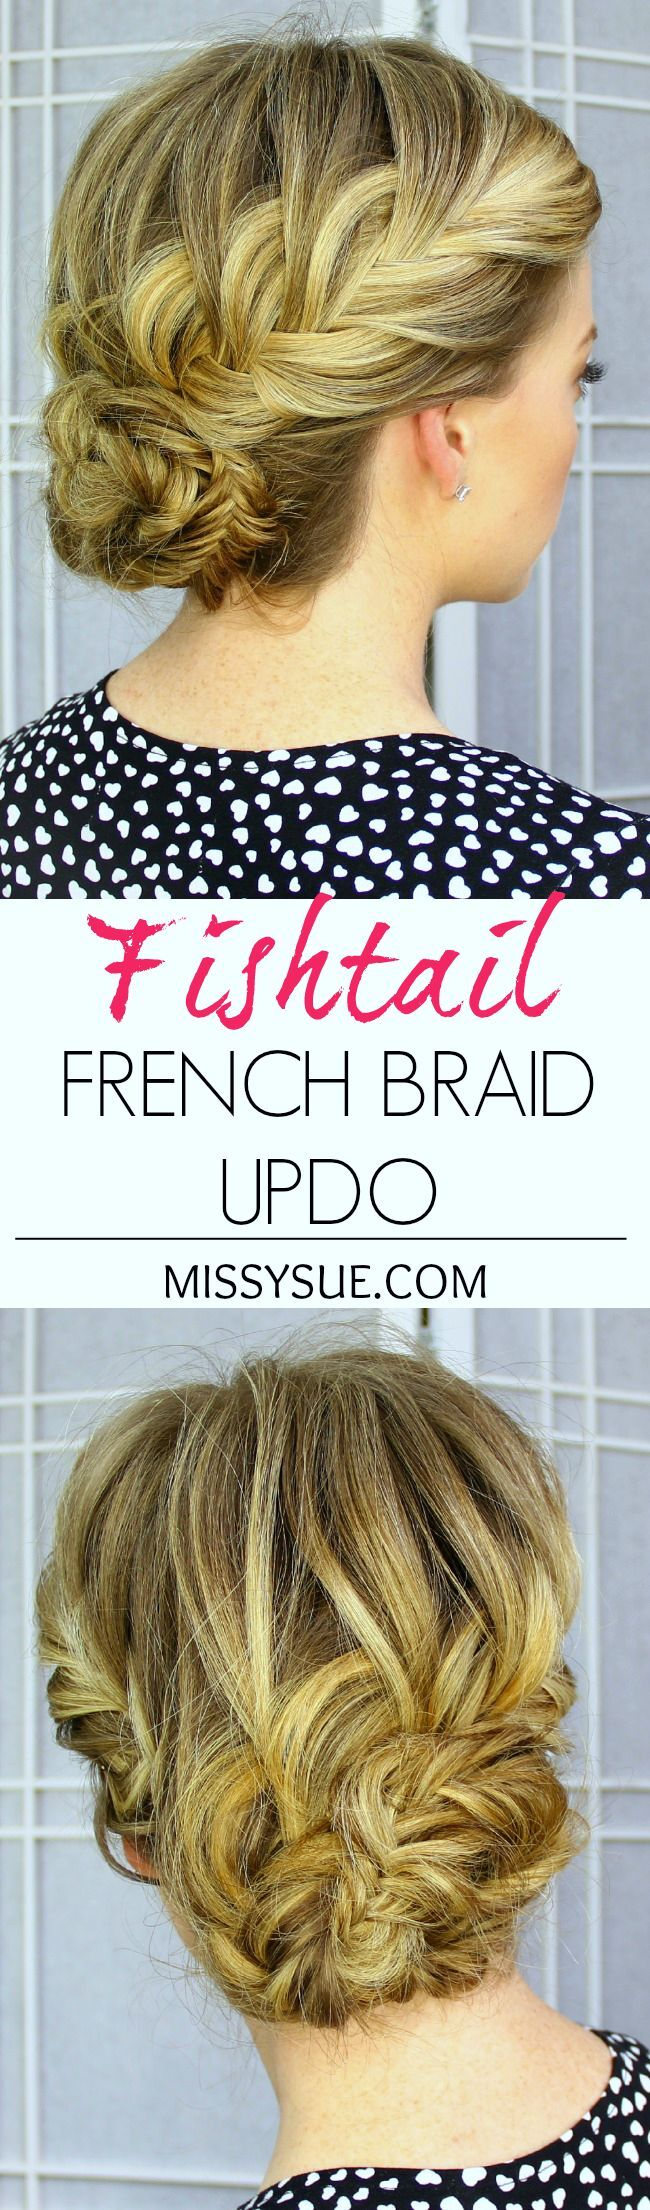 New Fishtail French Braid Updo Hairstyles - Low Updos for Prom& Dance Party